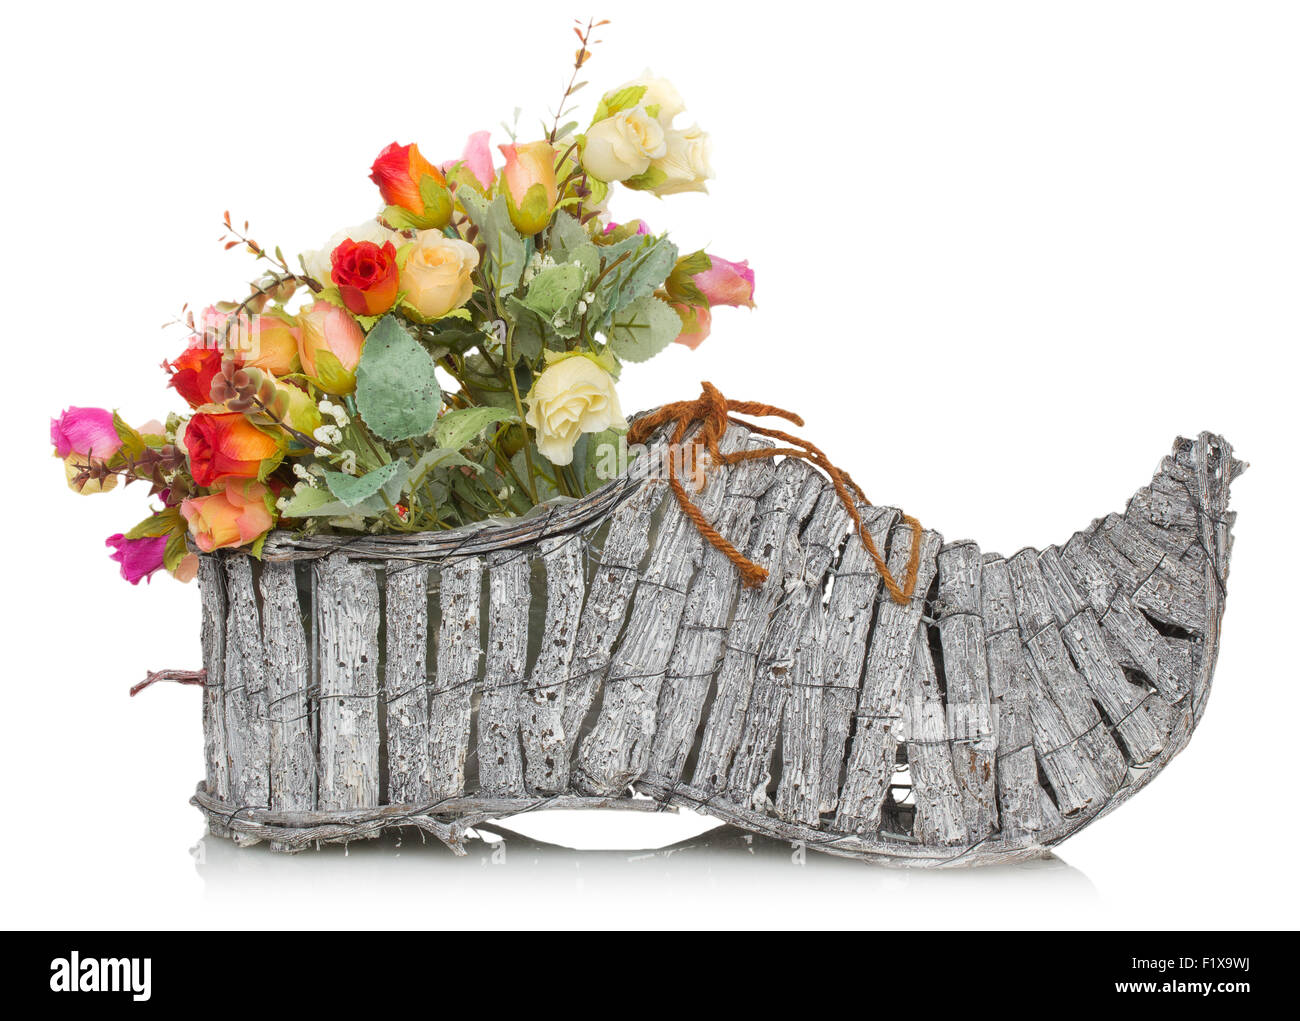 bouquet of flower in wooden boot on a white background. - Stock Image